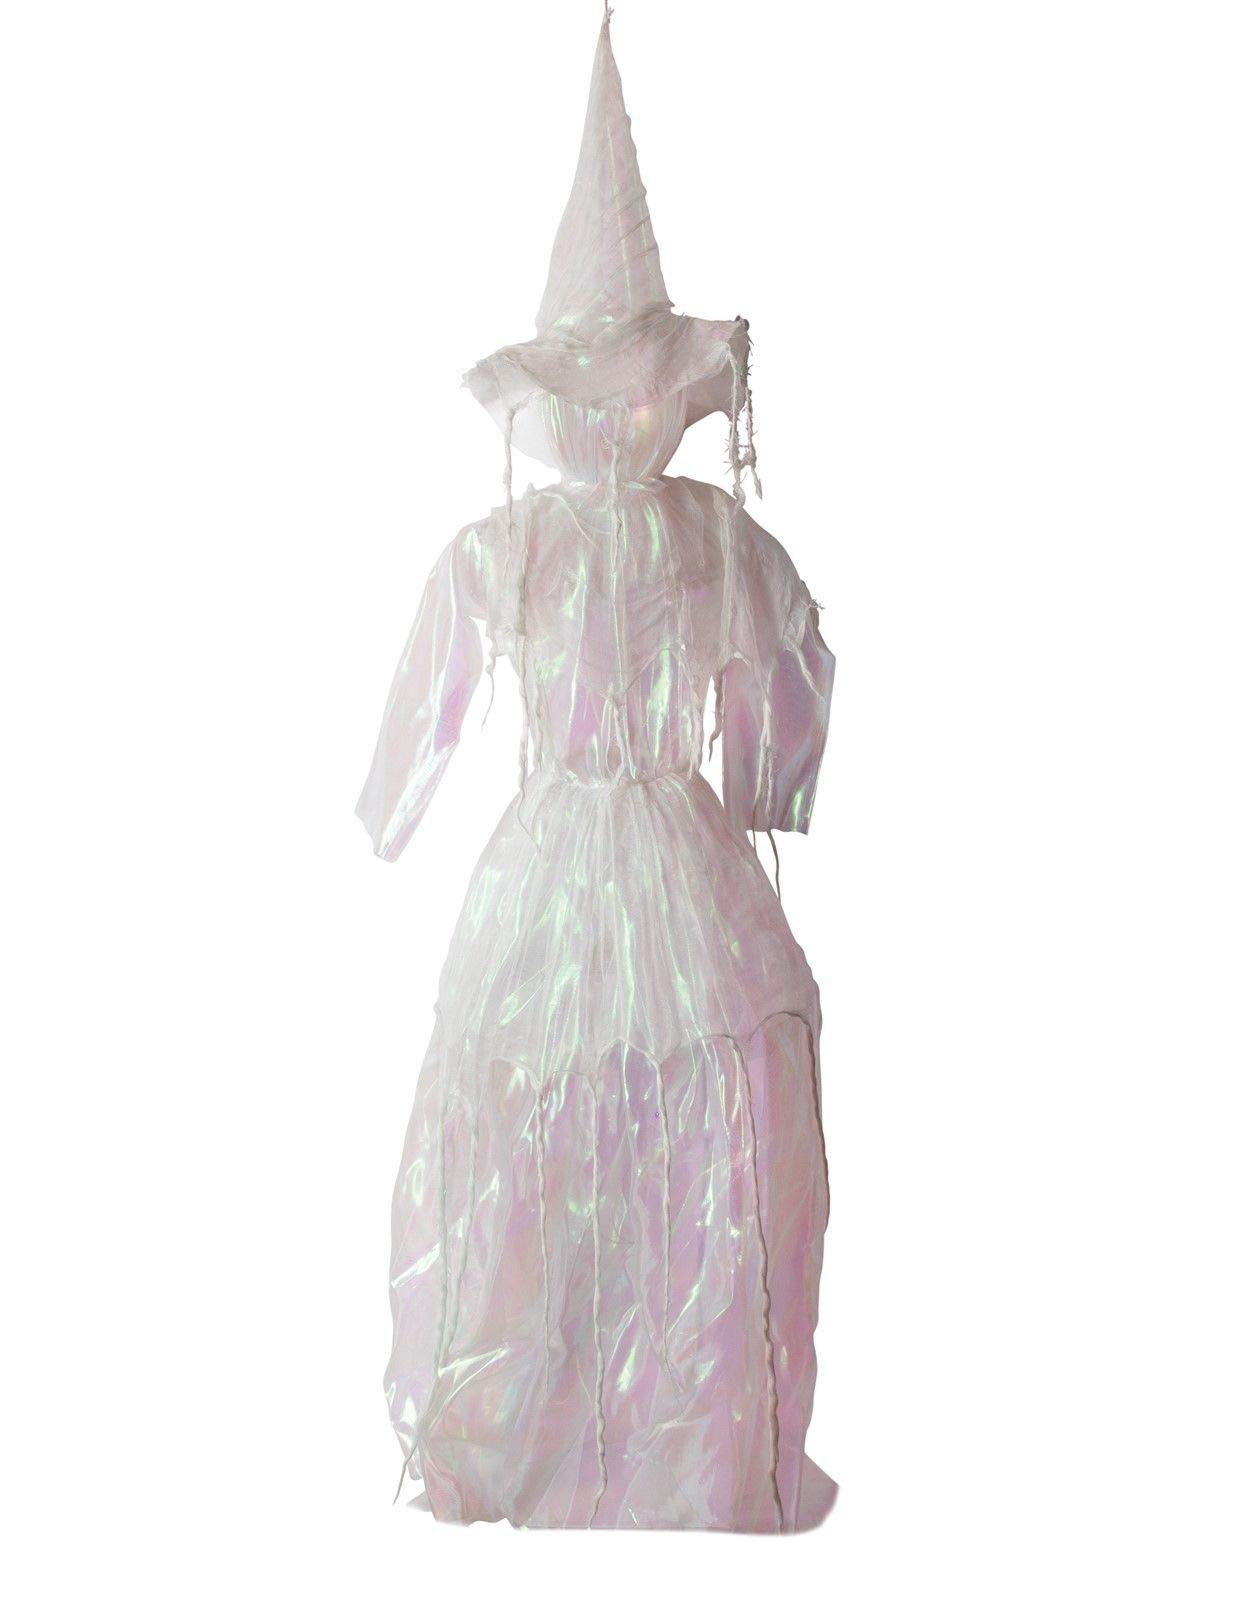 VTC Halloween Outdoor Decor Hanging Ghostly White Witch Lady Lights Up